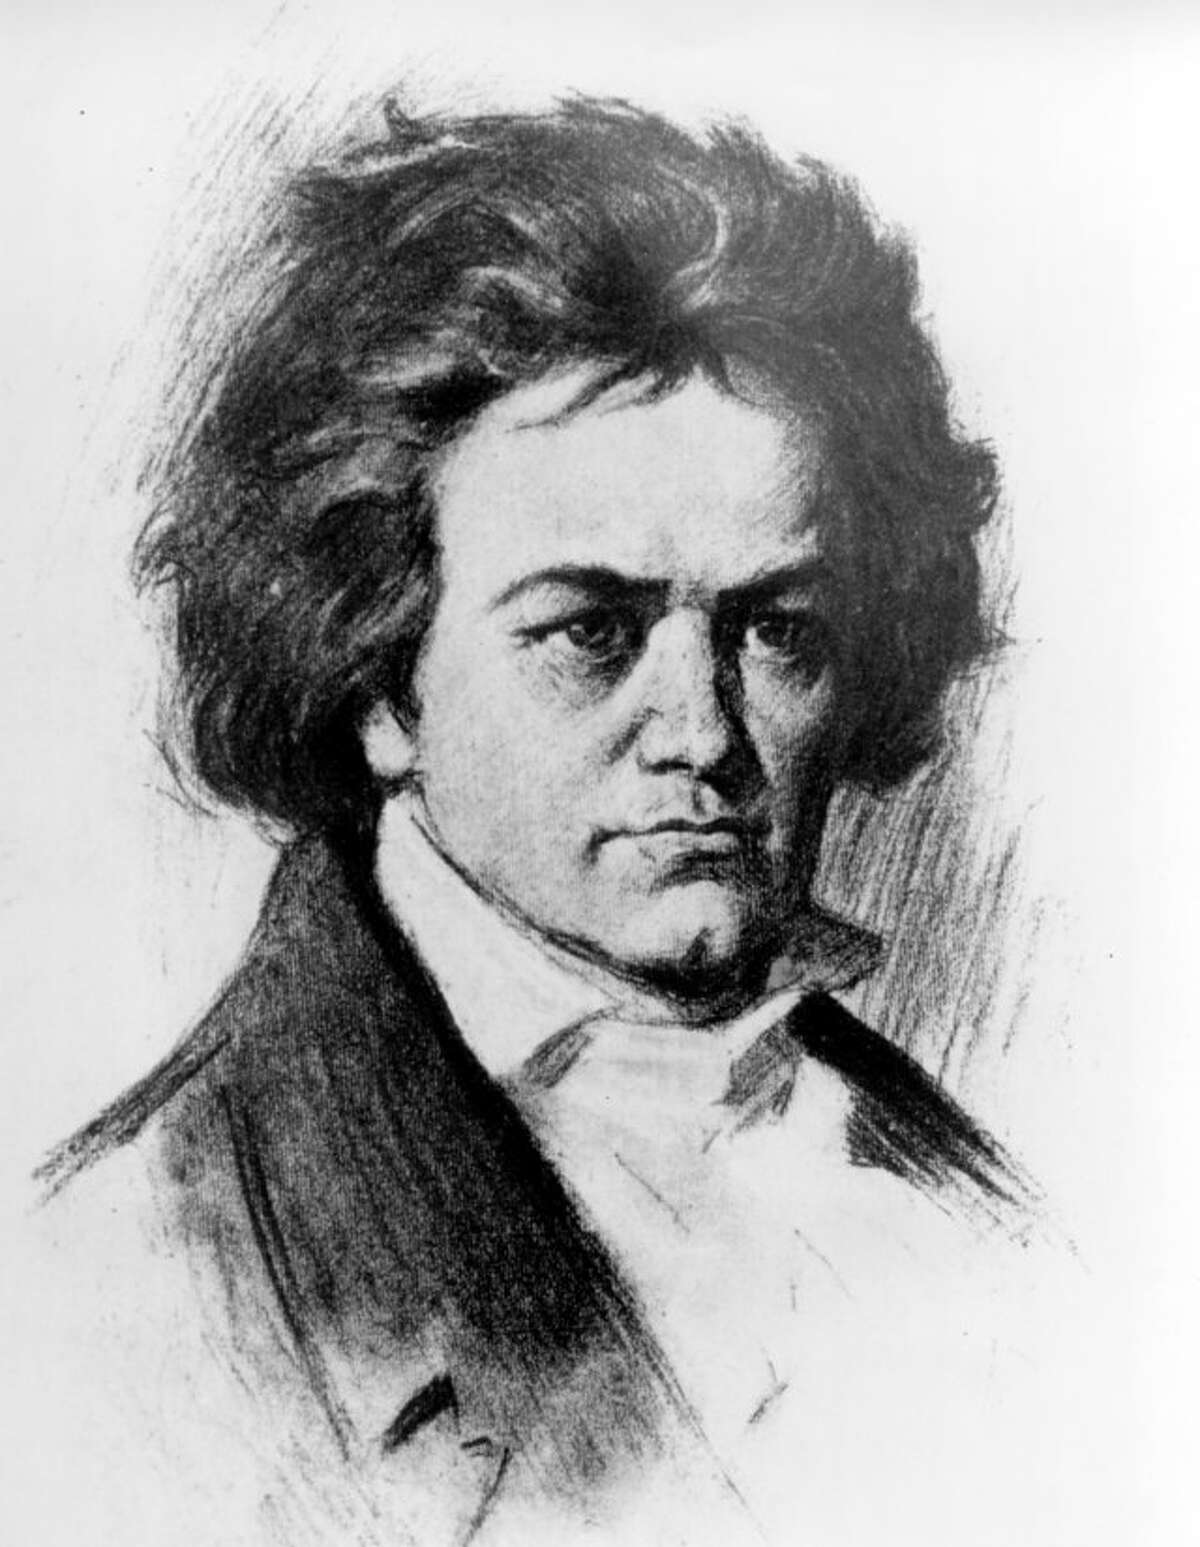 Ludwig van Beethoven (AP photo)